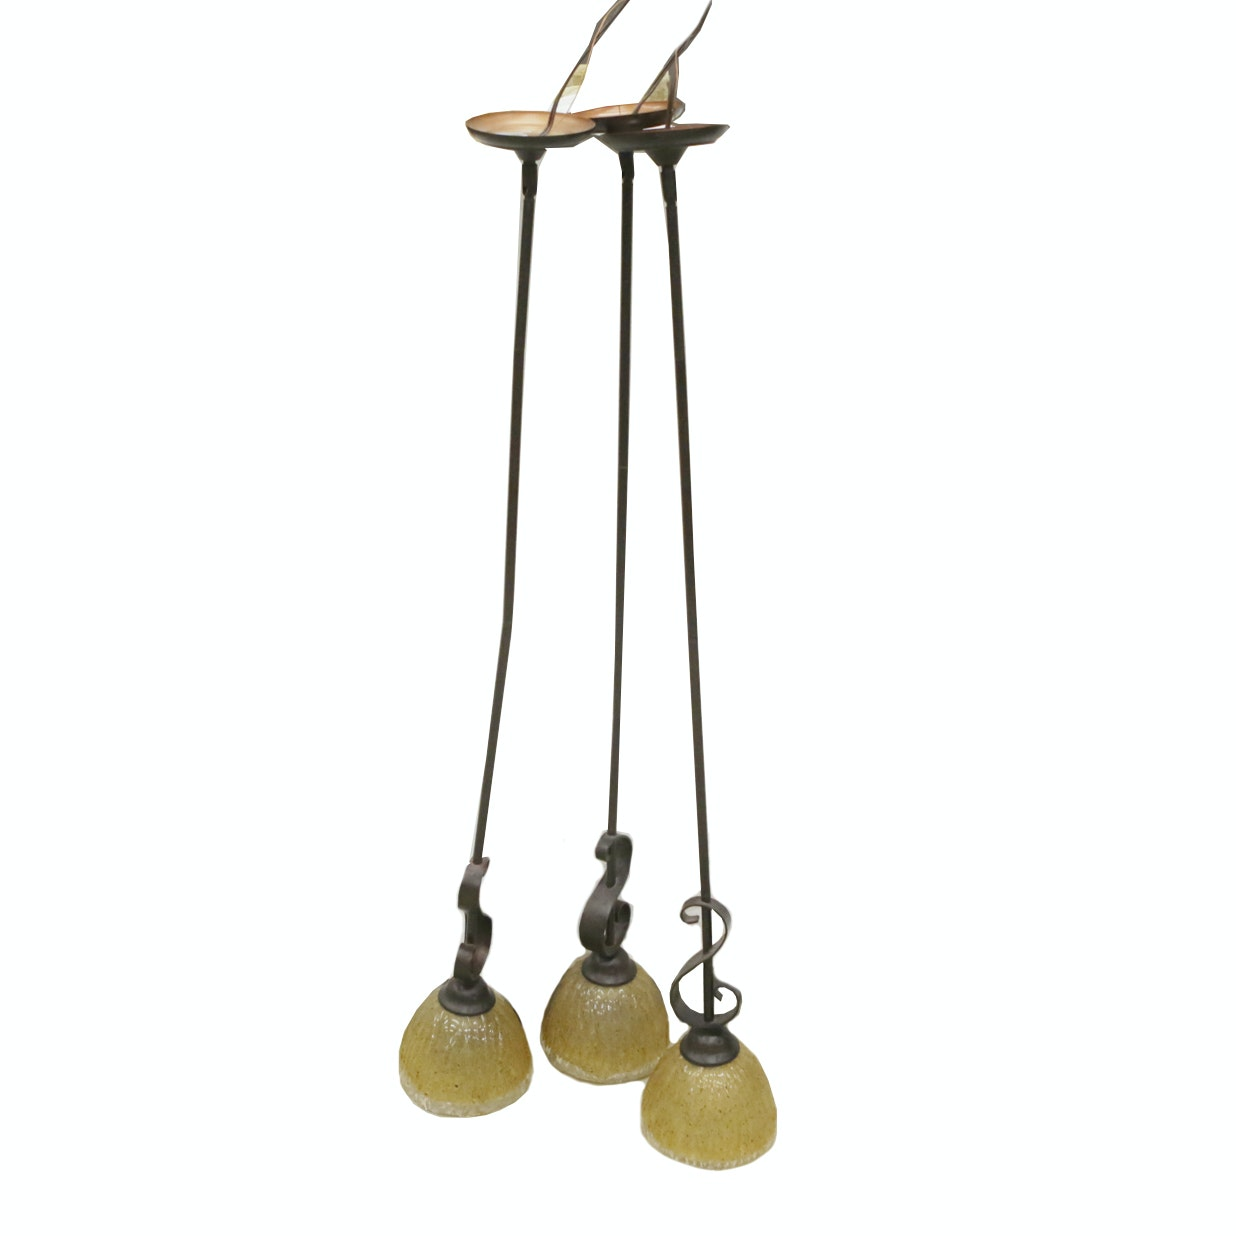 Wrought Metal and Glass Pendant Lights